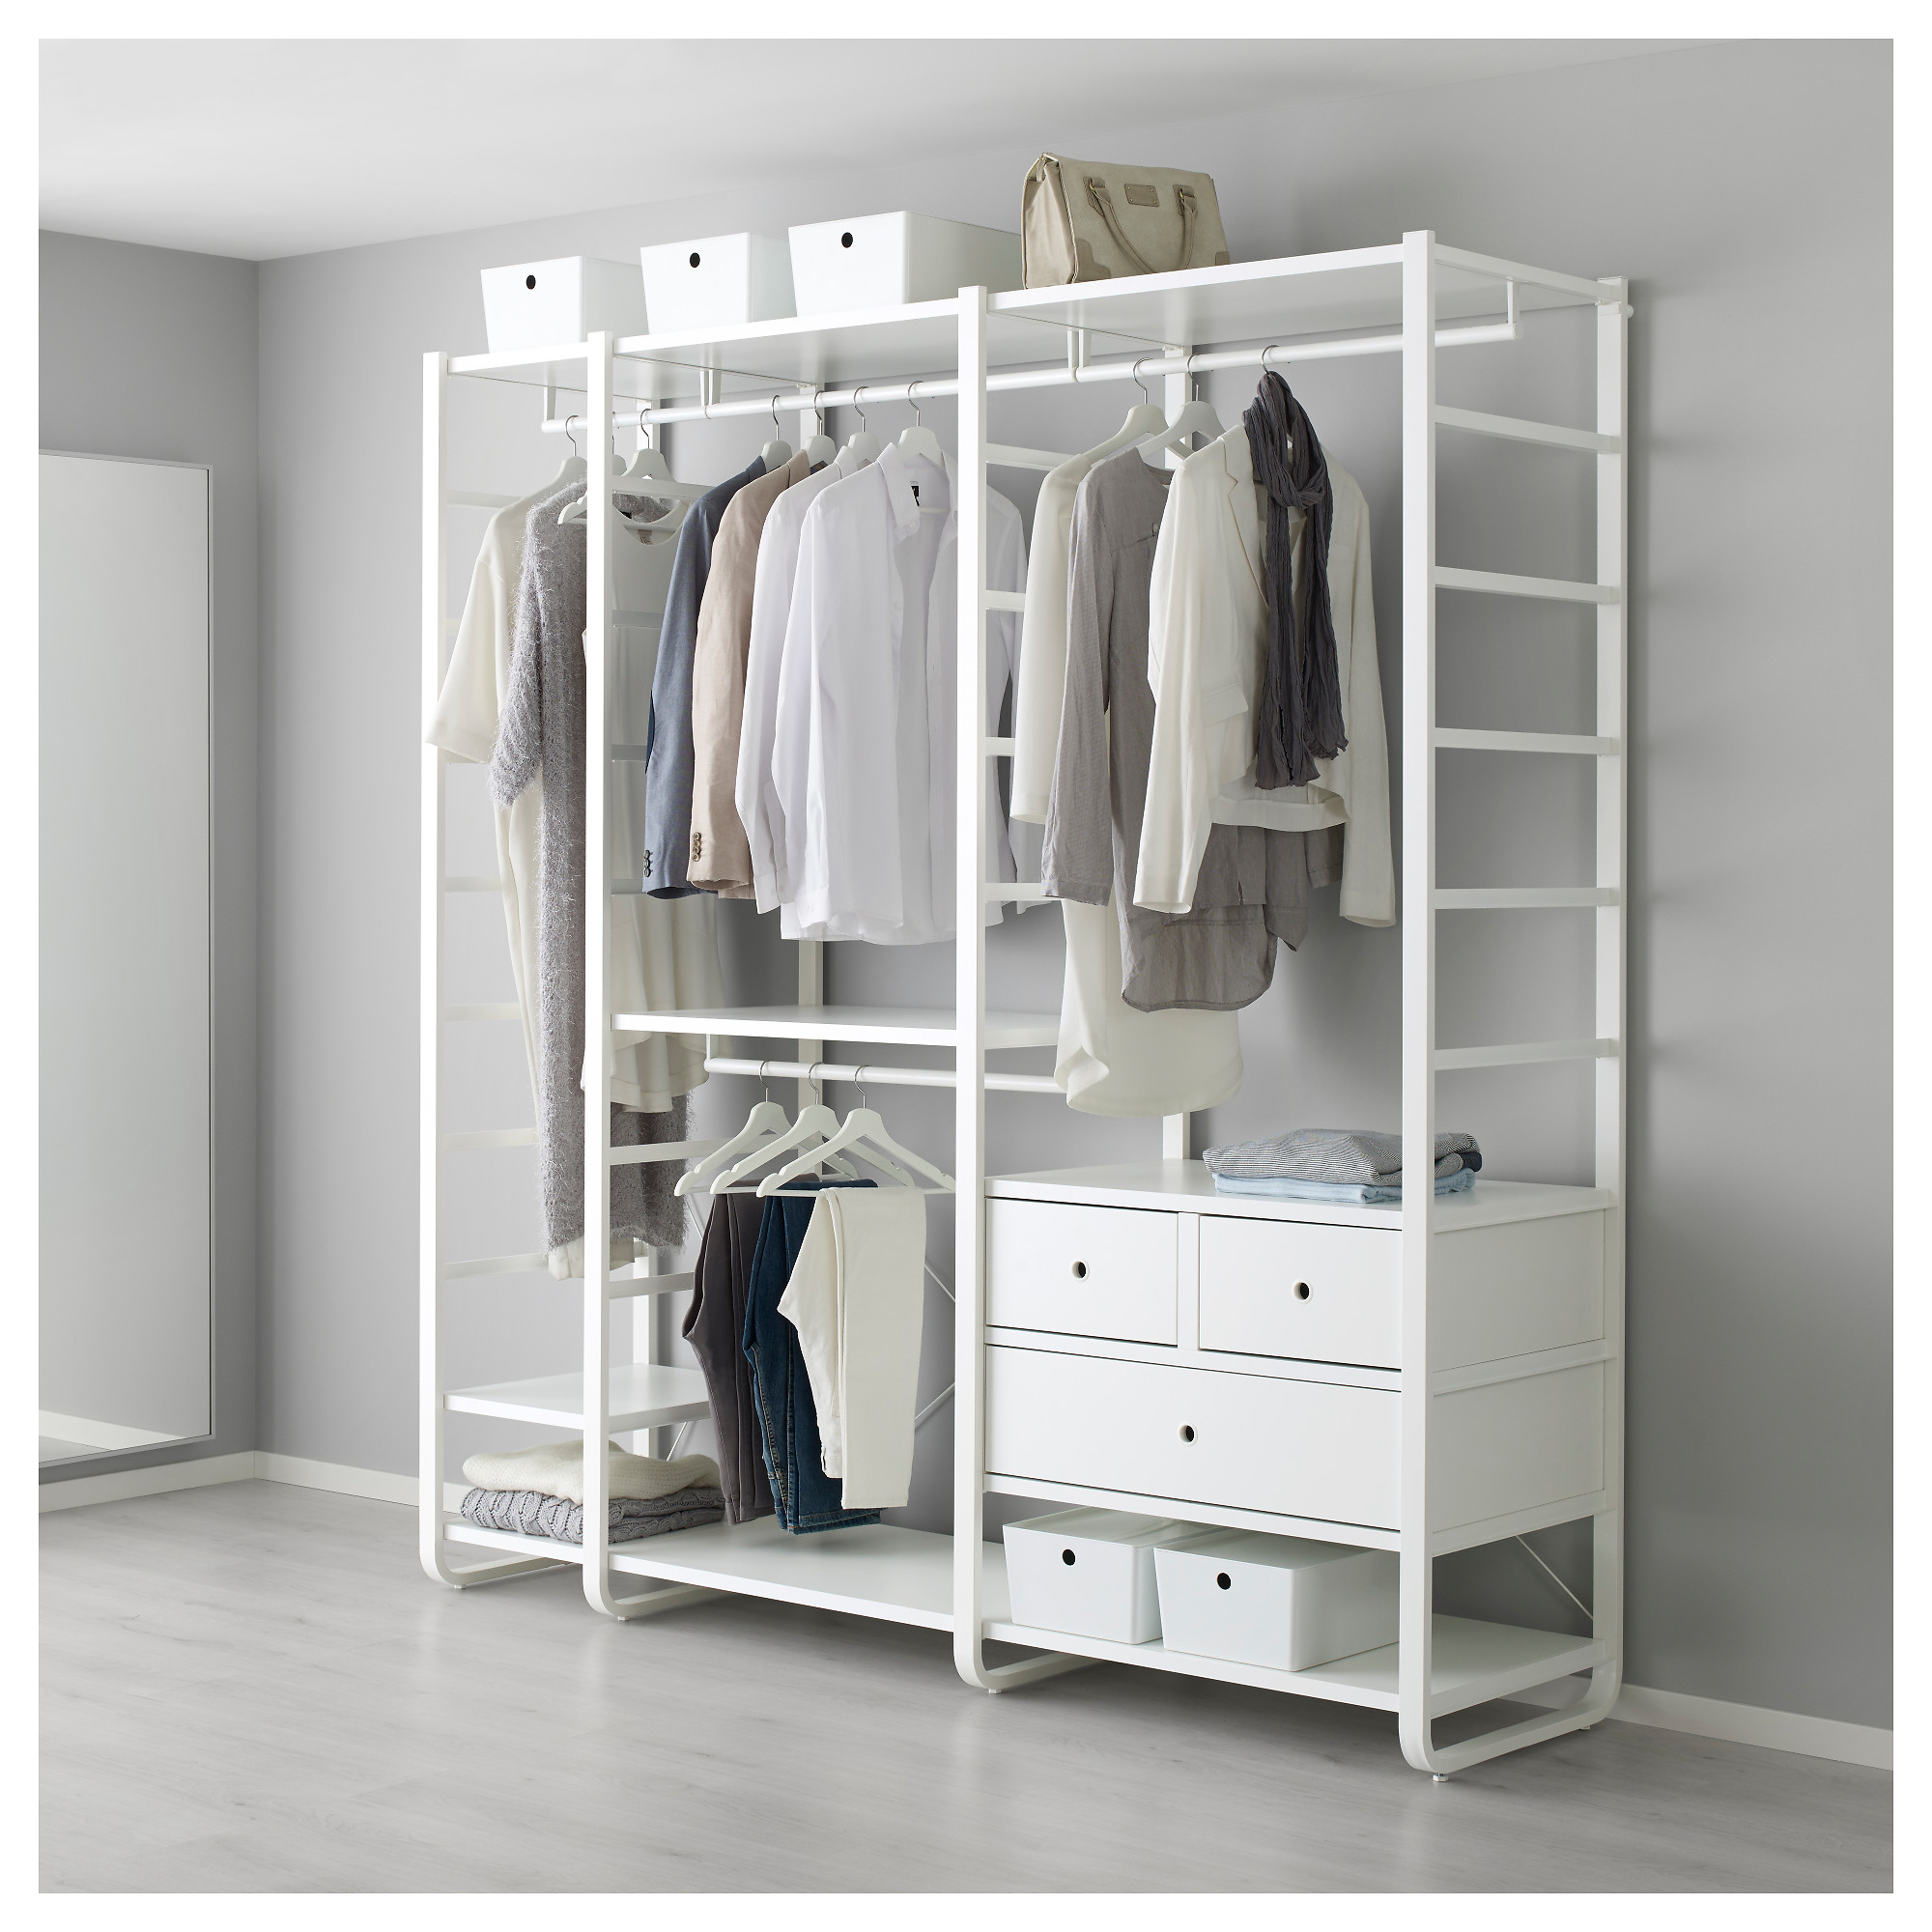 Cabina Armadio Algot Ikea.Elvarli 3 Sections White Ikea Indonesia